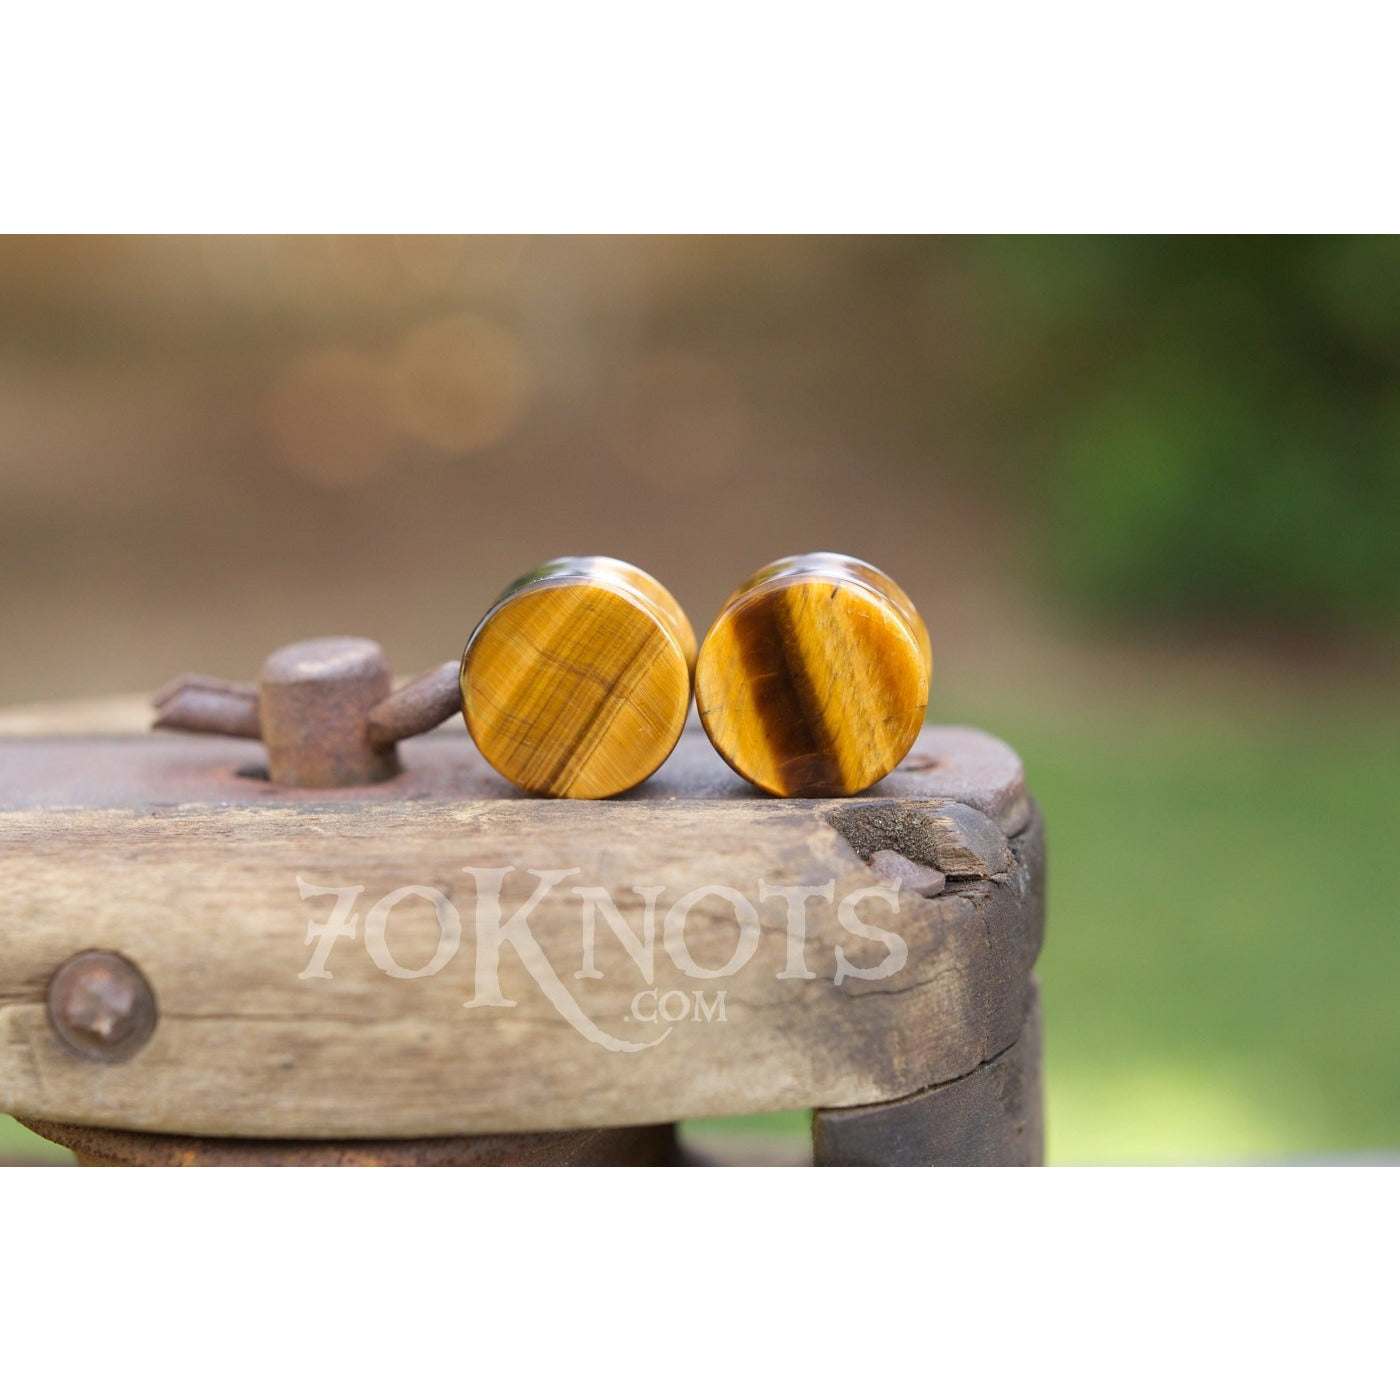 Tigers Eye Double Flared Plugs, Pair - 70 Knots